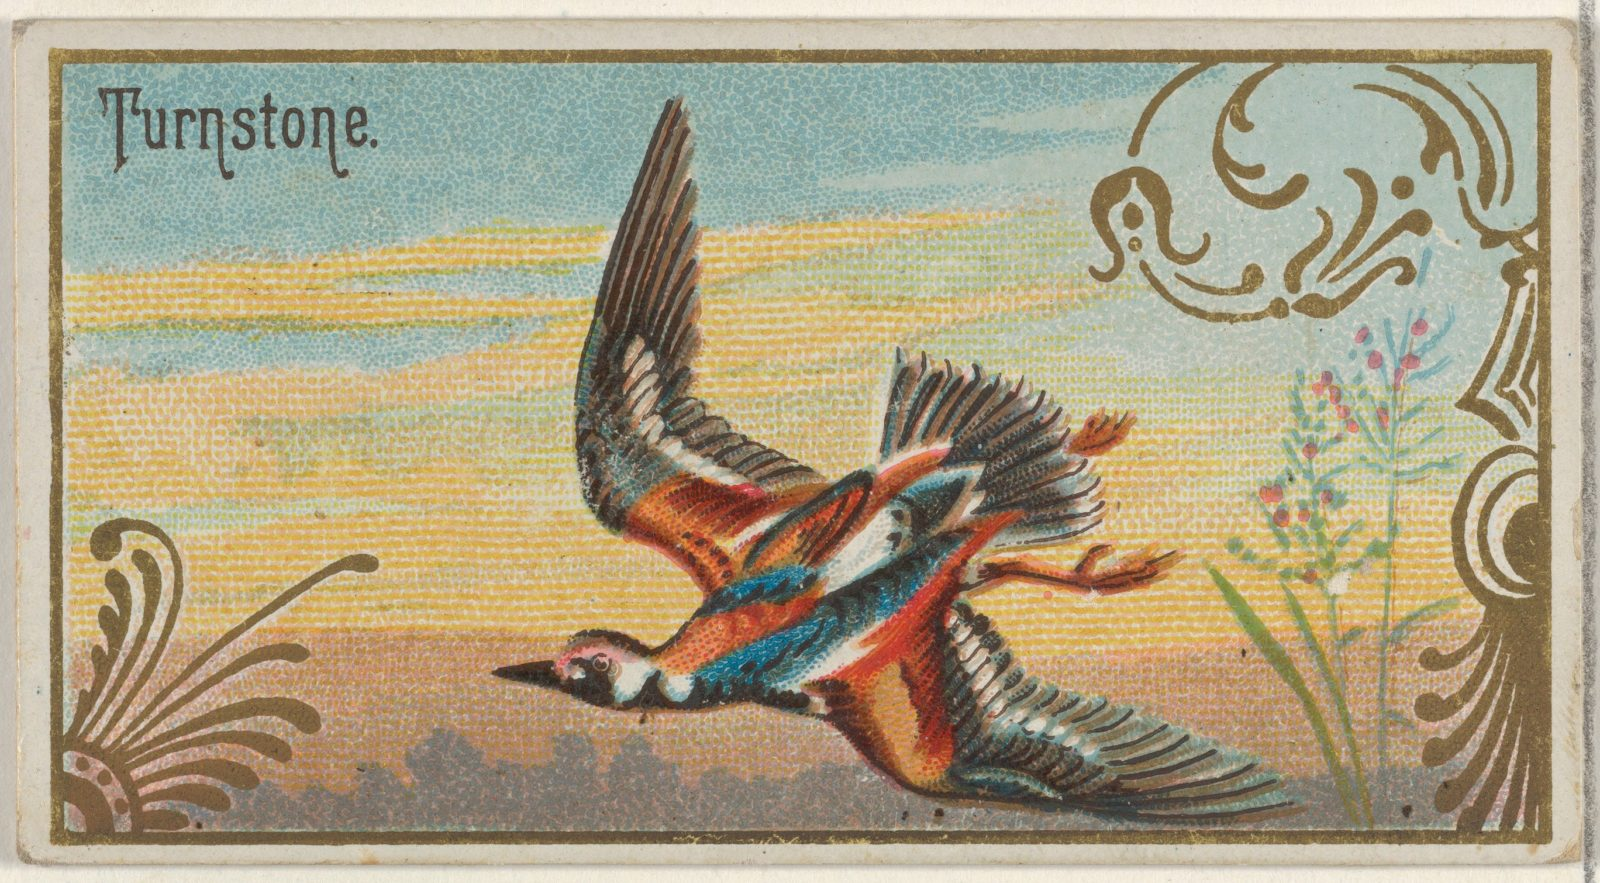 Turnstone, from the Game Birds series (N13) for Allen & Ginter Cigarettes Brands